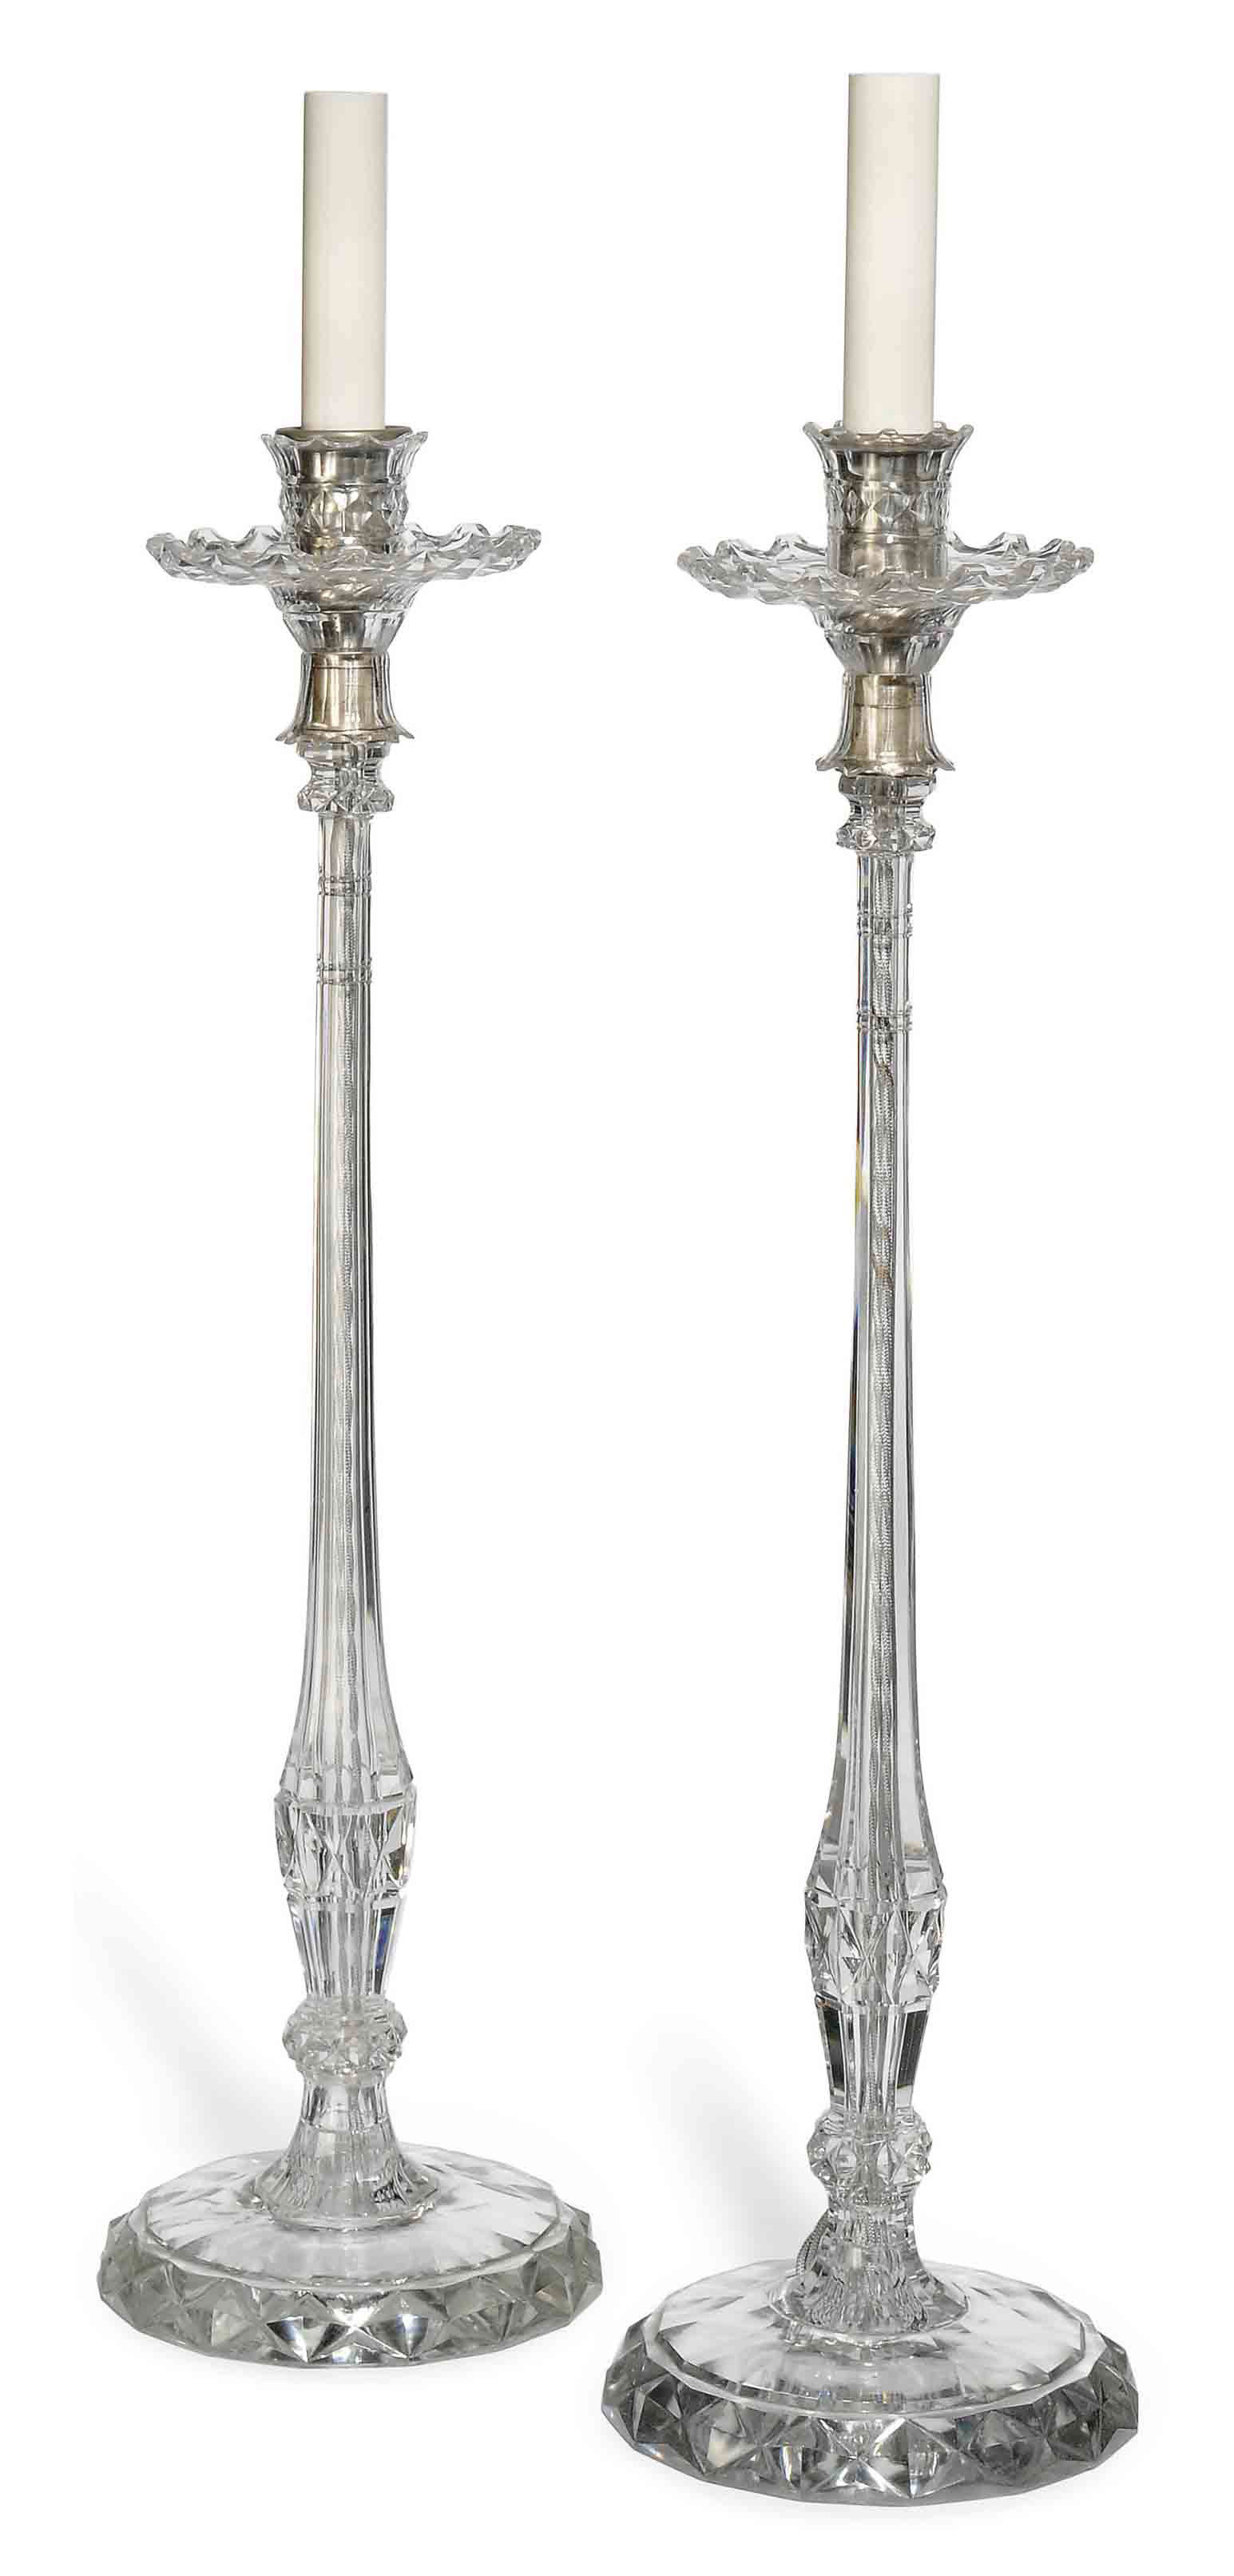 A PAIR OF GLASS TABLE LAMPS